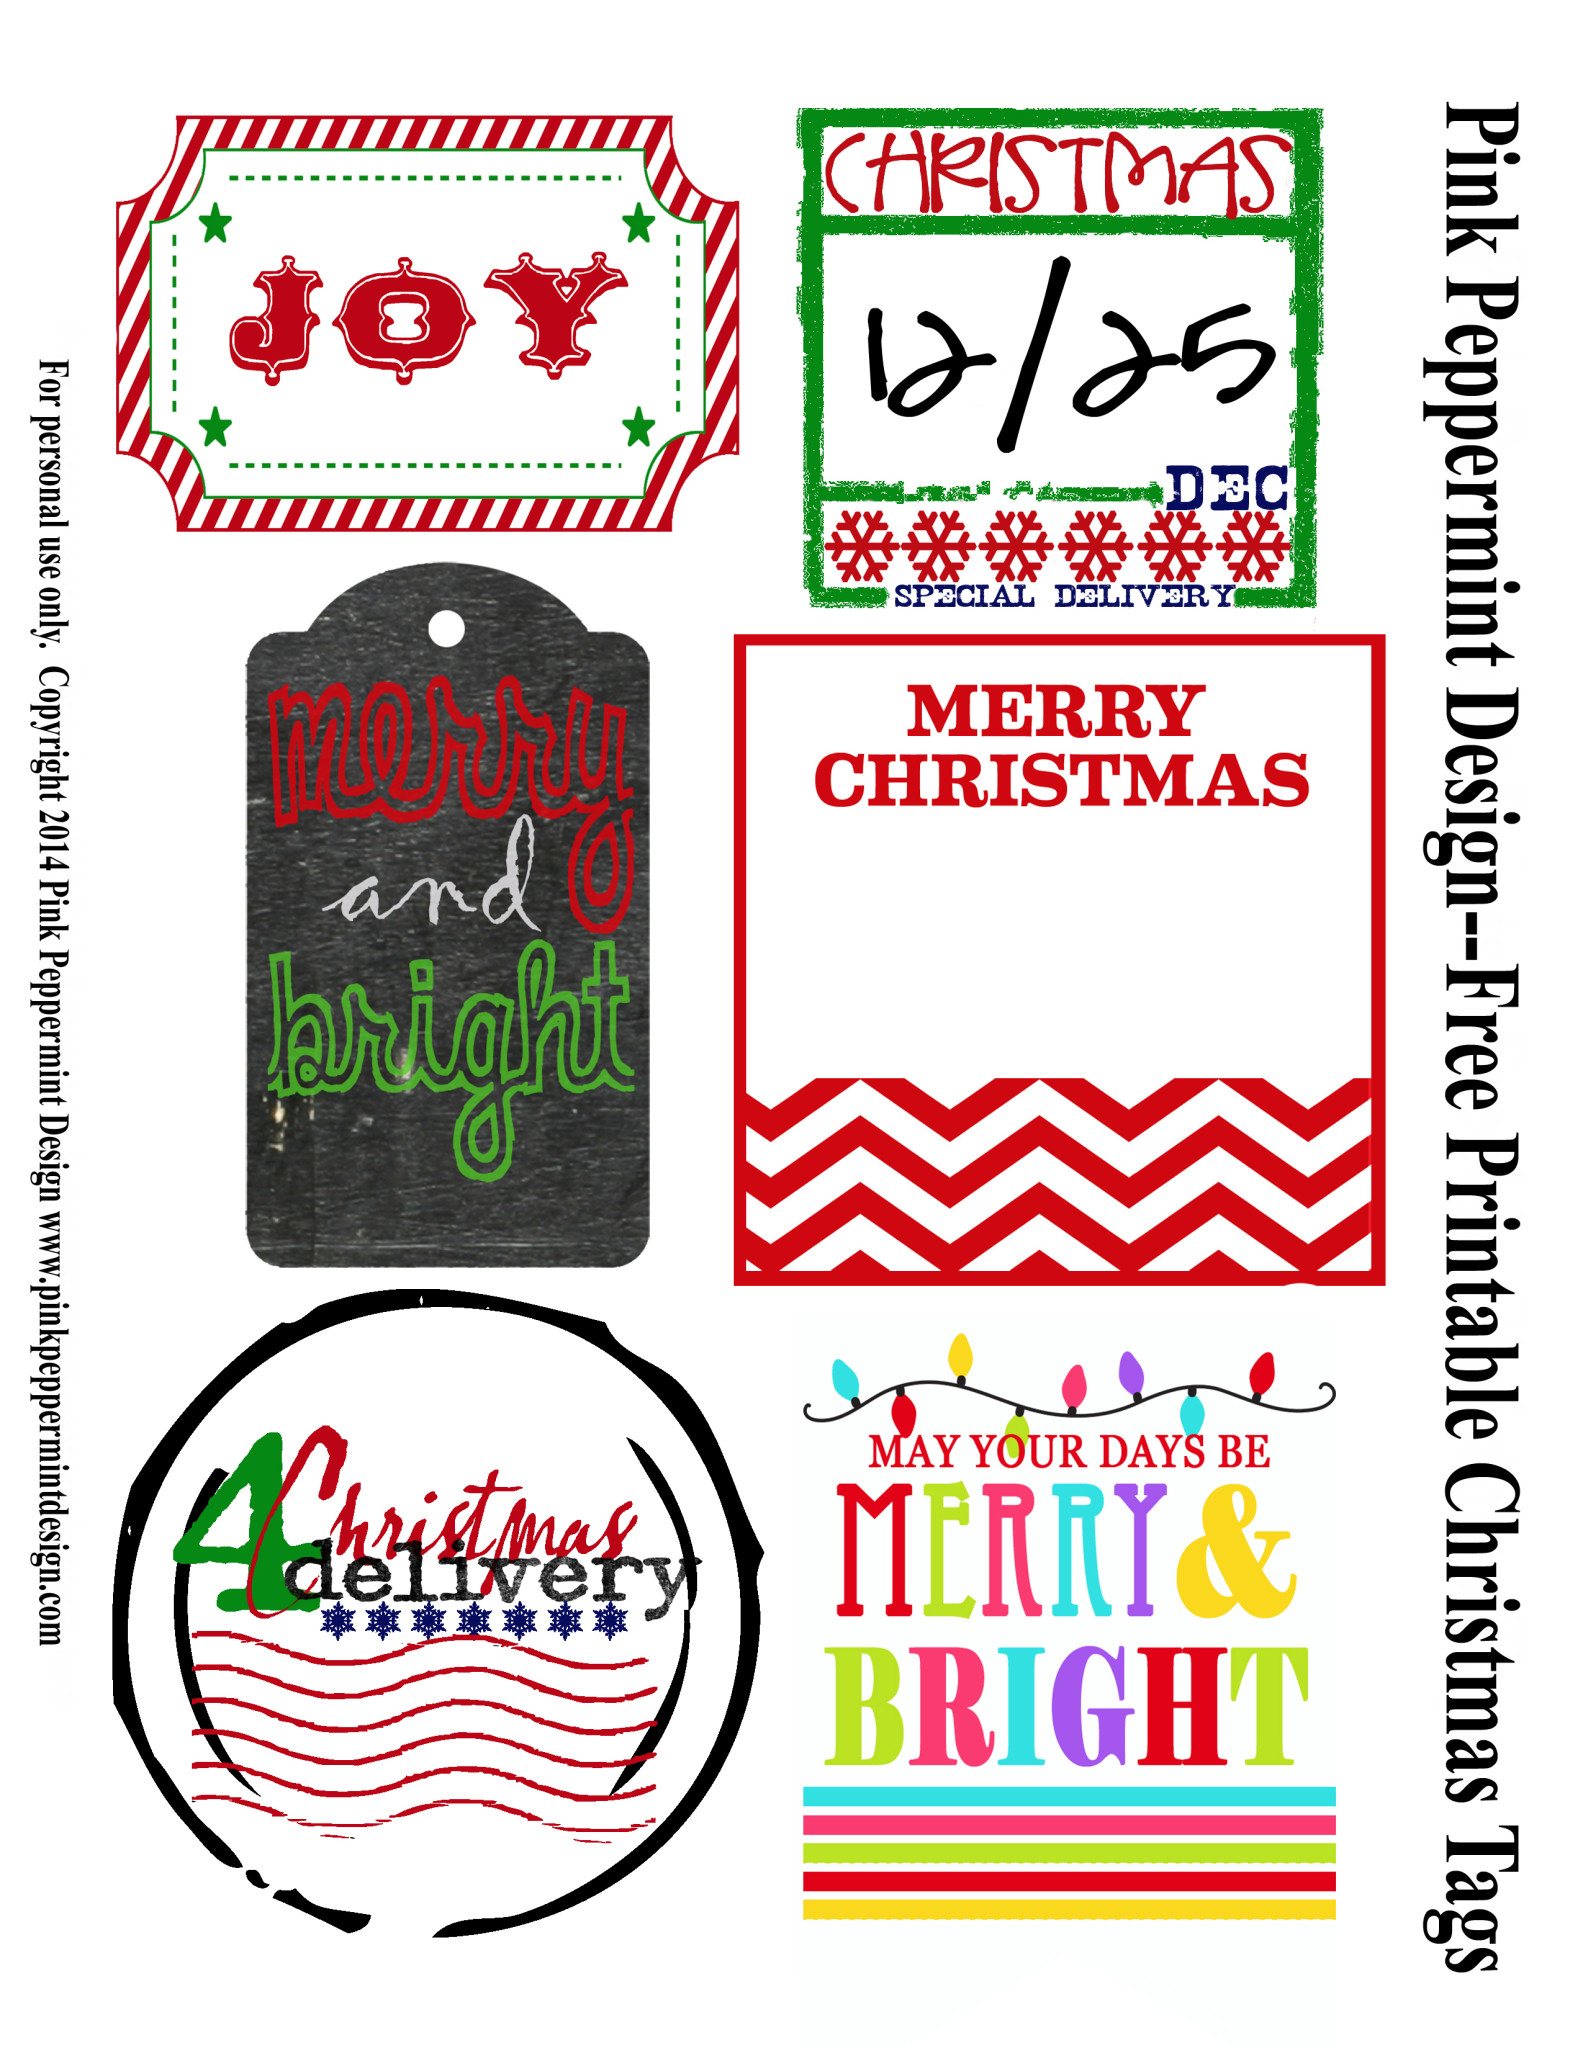 image regarding Merry Christmas Tags Free Printable named Xmas Present Tags Printables - Purple Peppermint Design and style